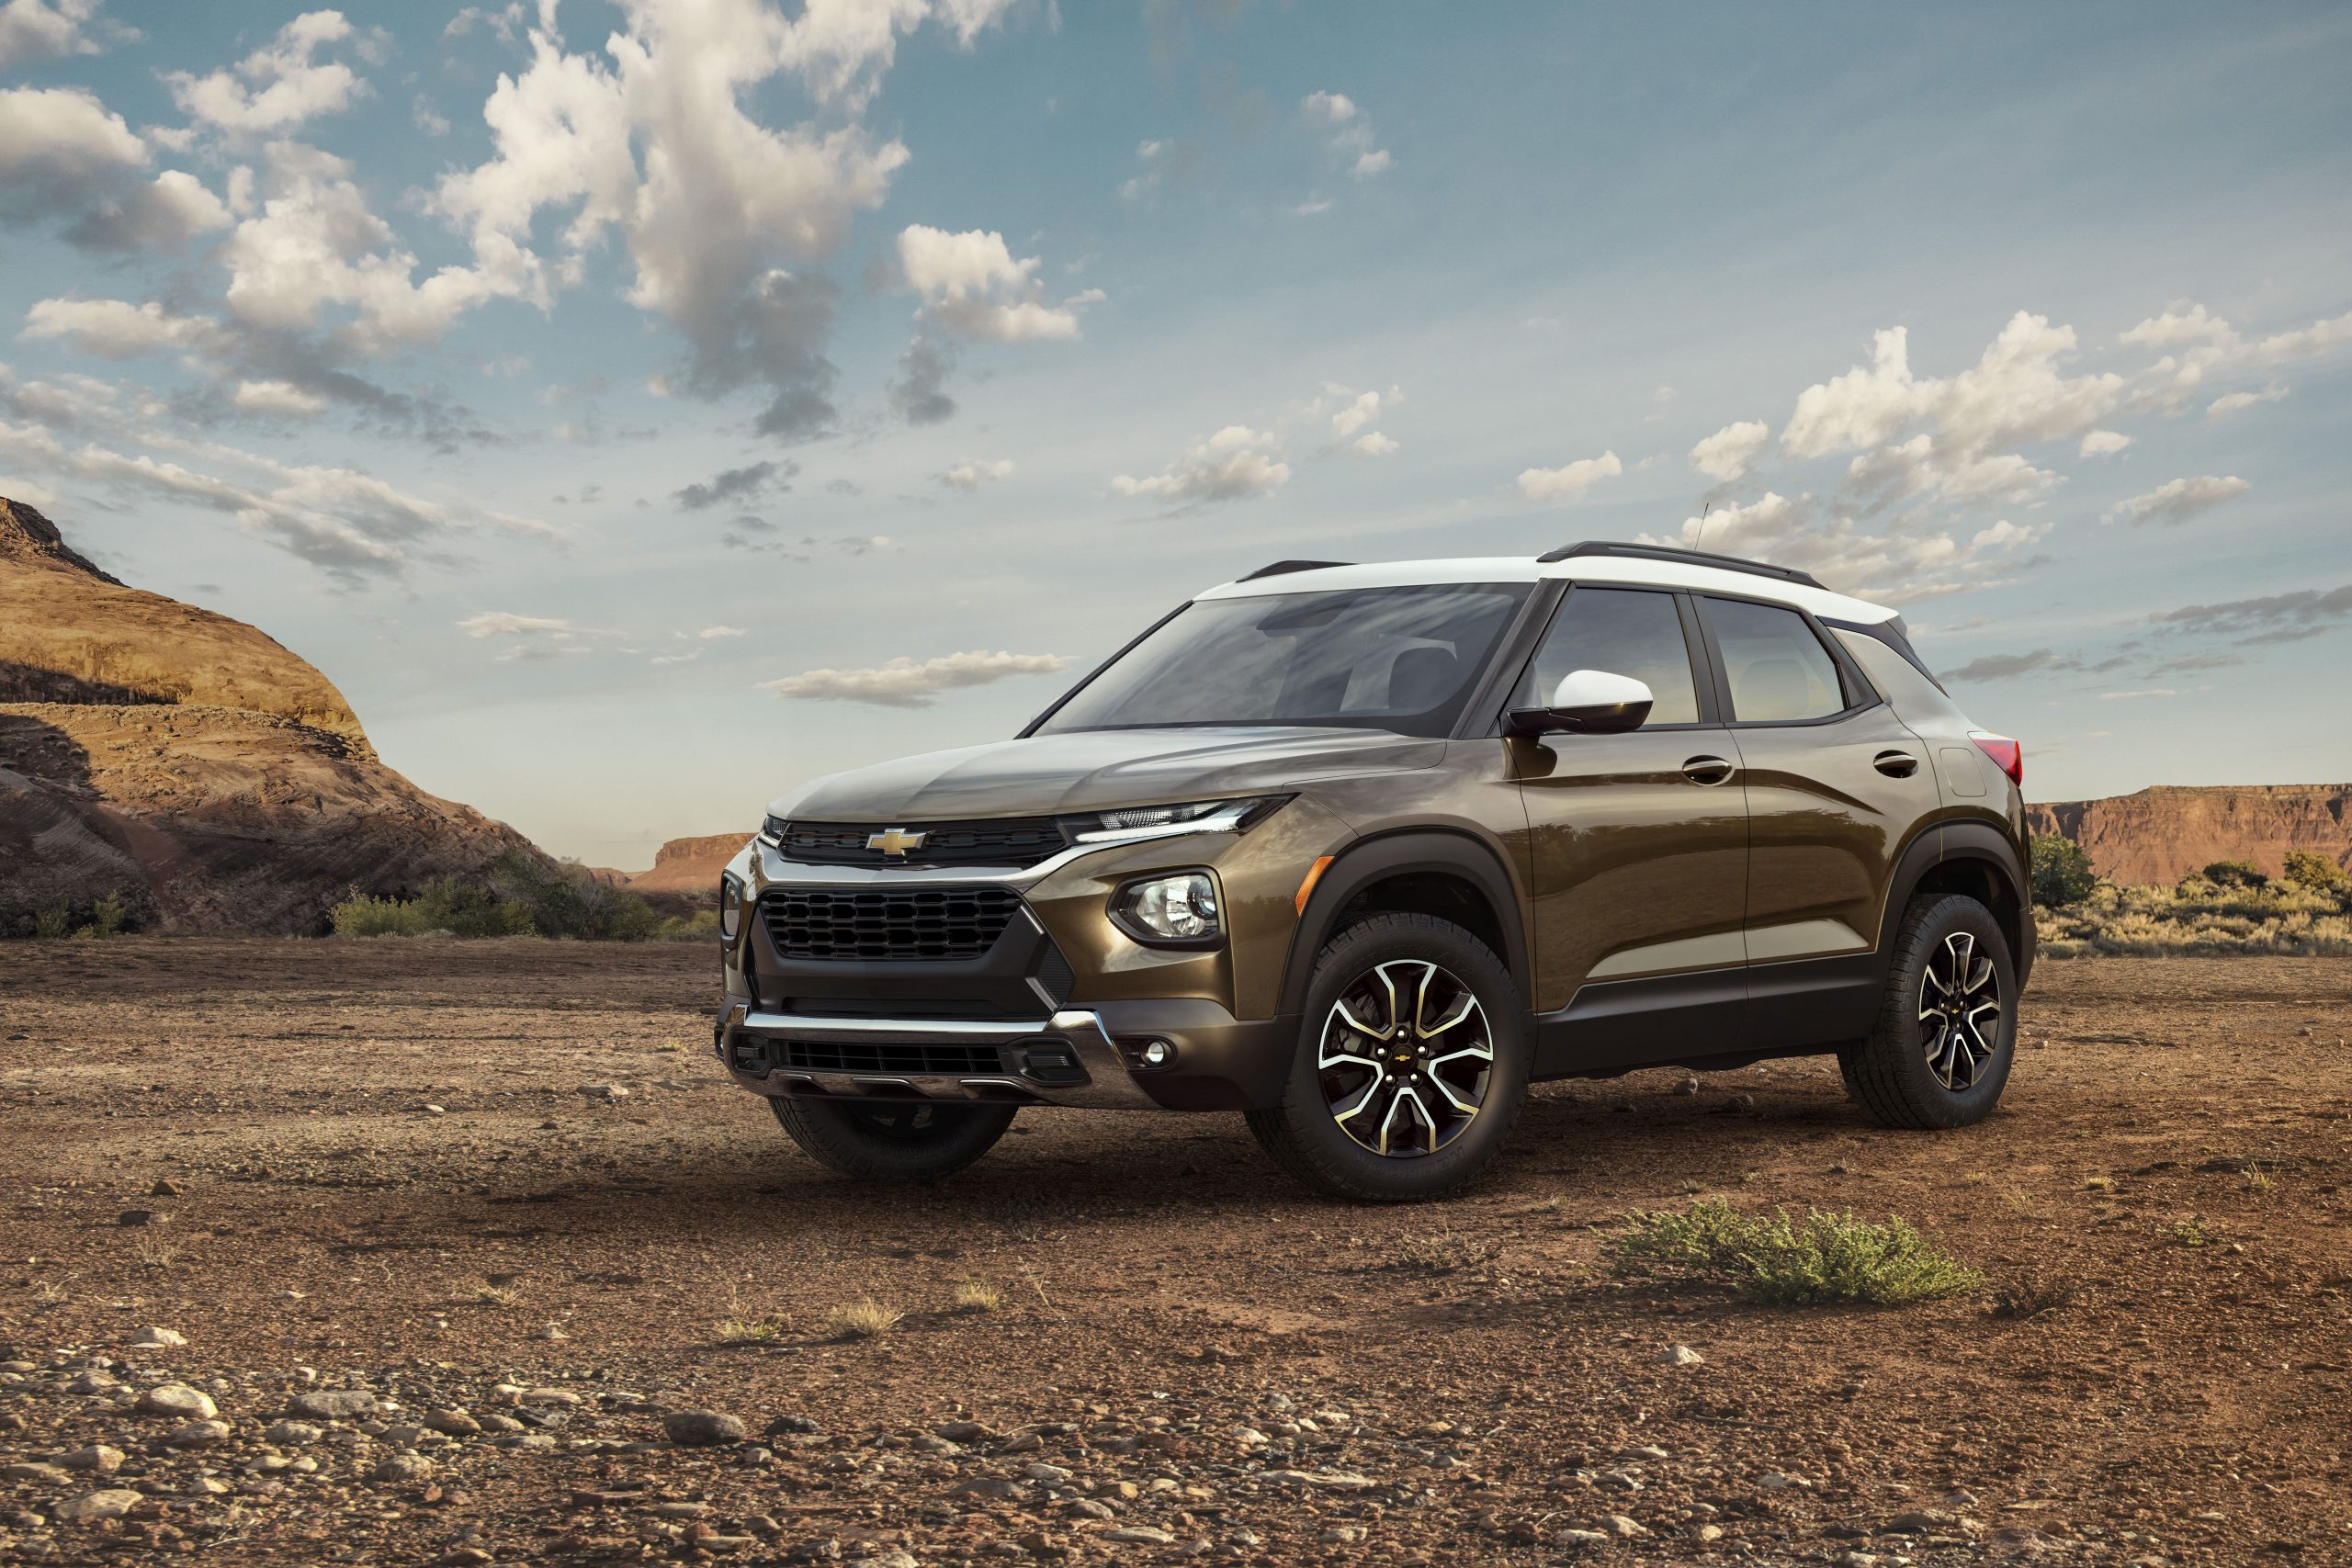 2021 Chevy Trailblazer Starts At Less Than $20,000 2021 Chevy Trax Pictures, Price, Cost